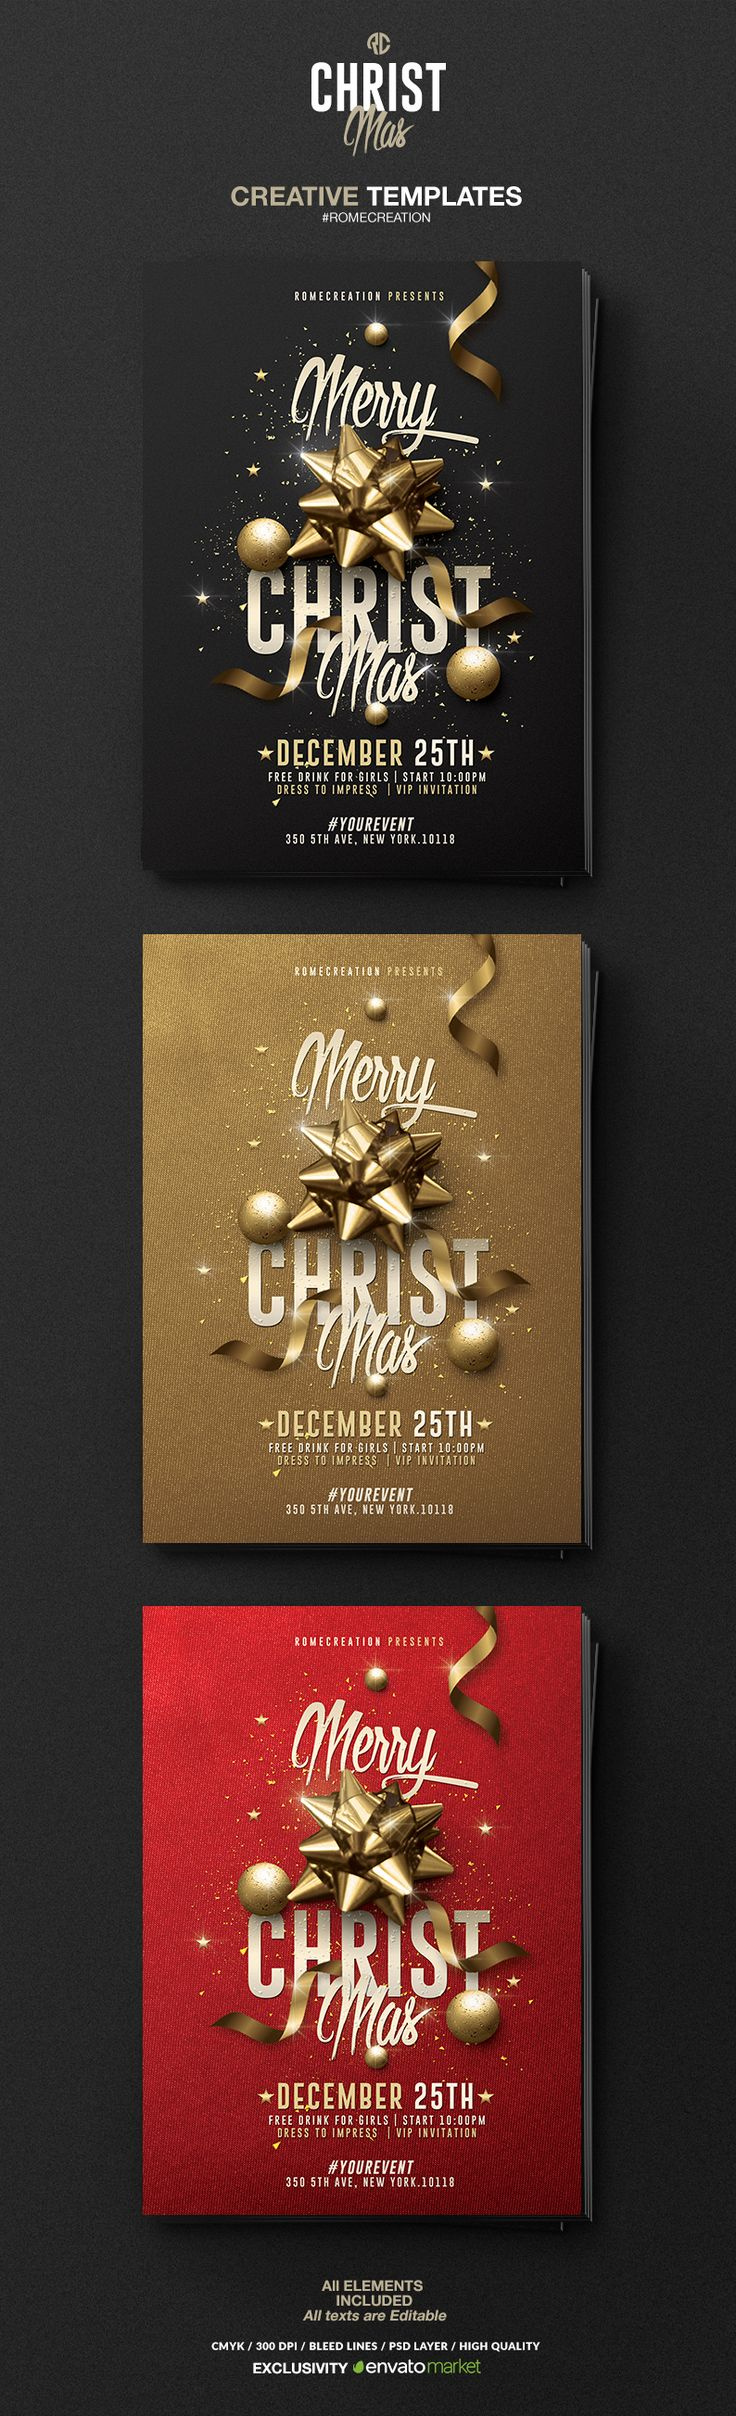 Creative Christmas on Behance